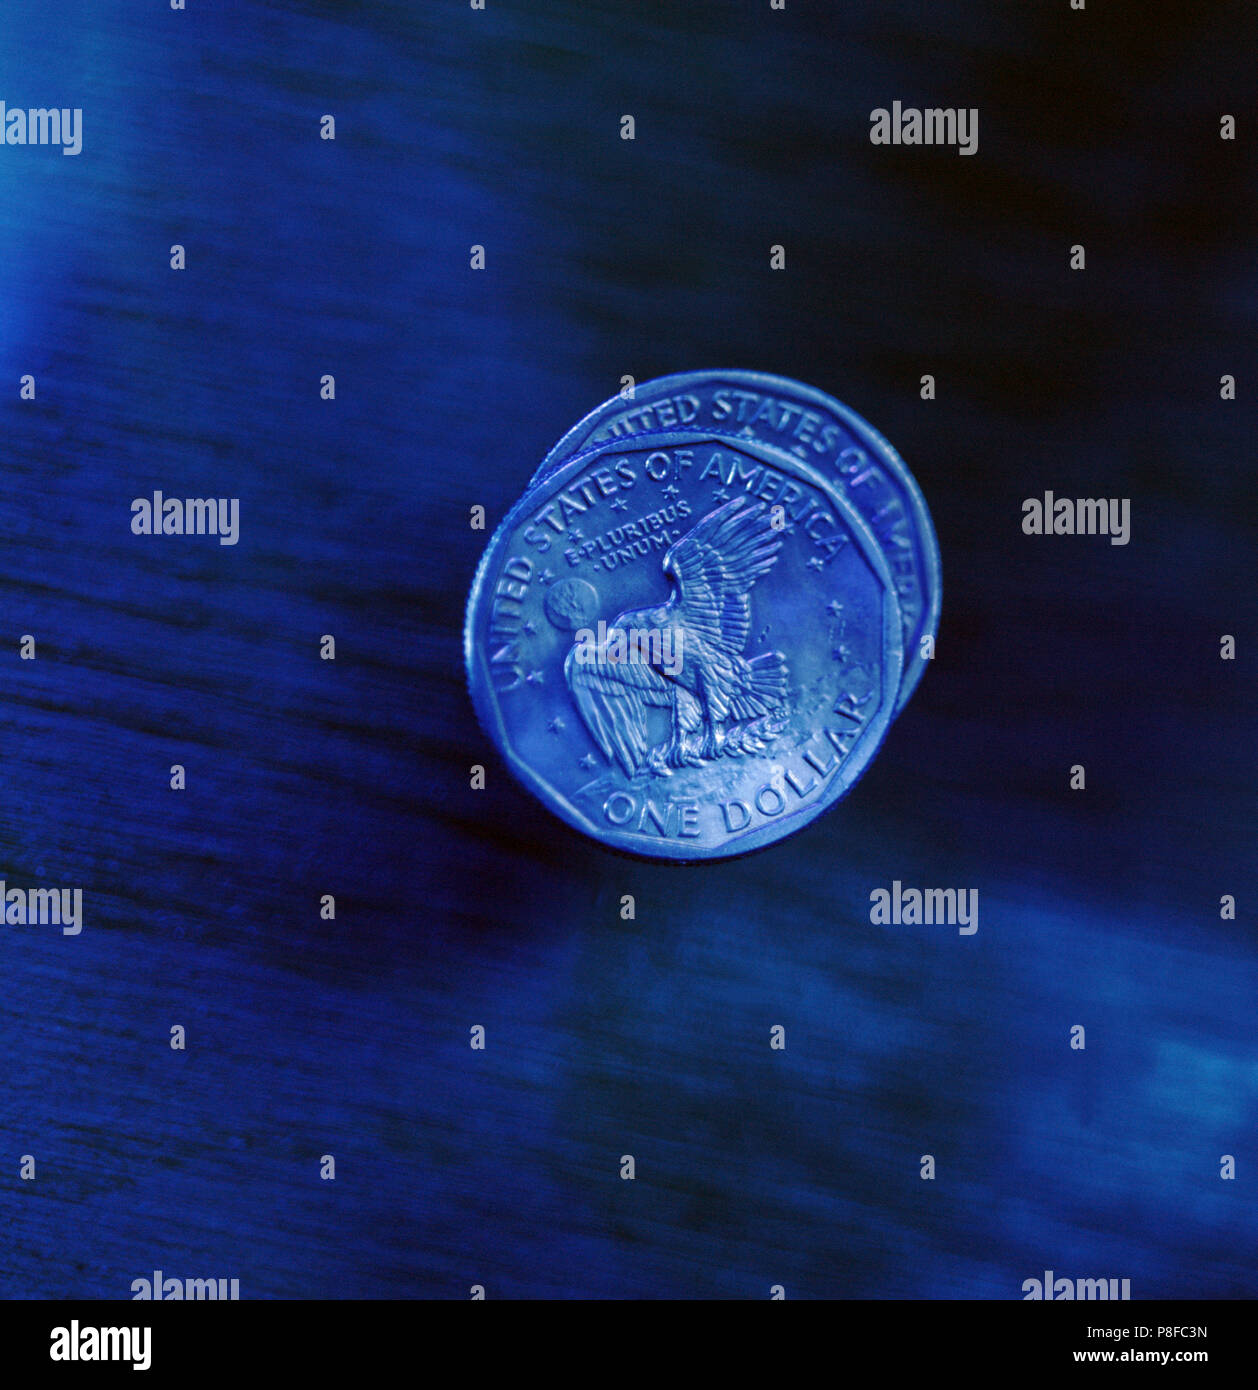 2 American Dollar Coin Blue Cast - Stock Image